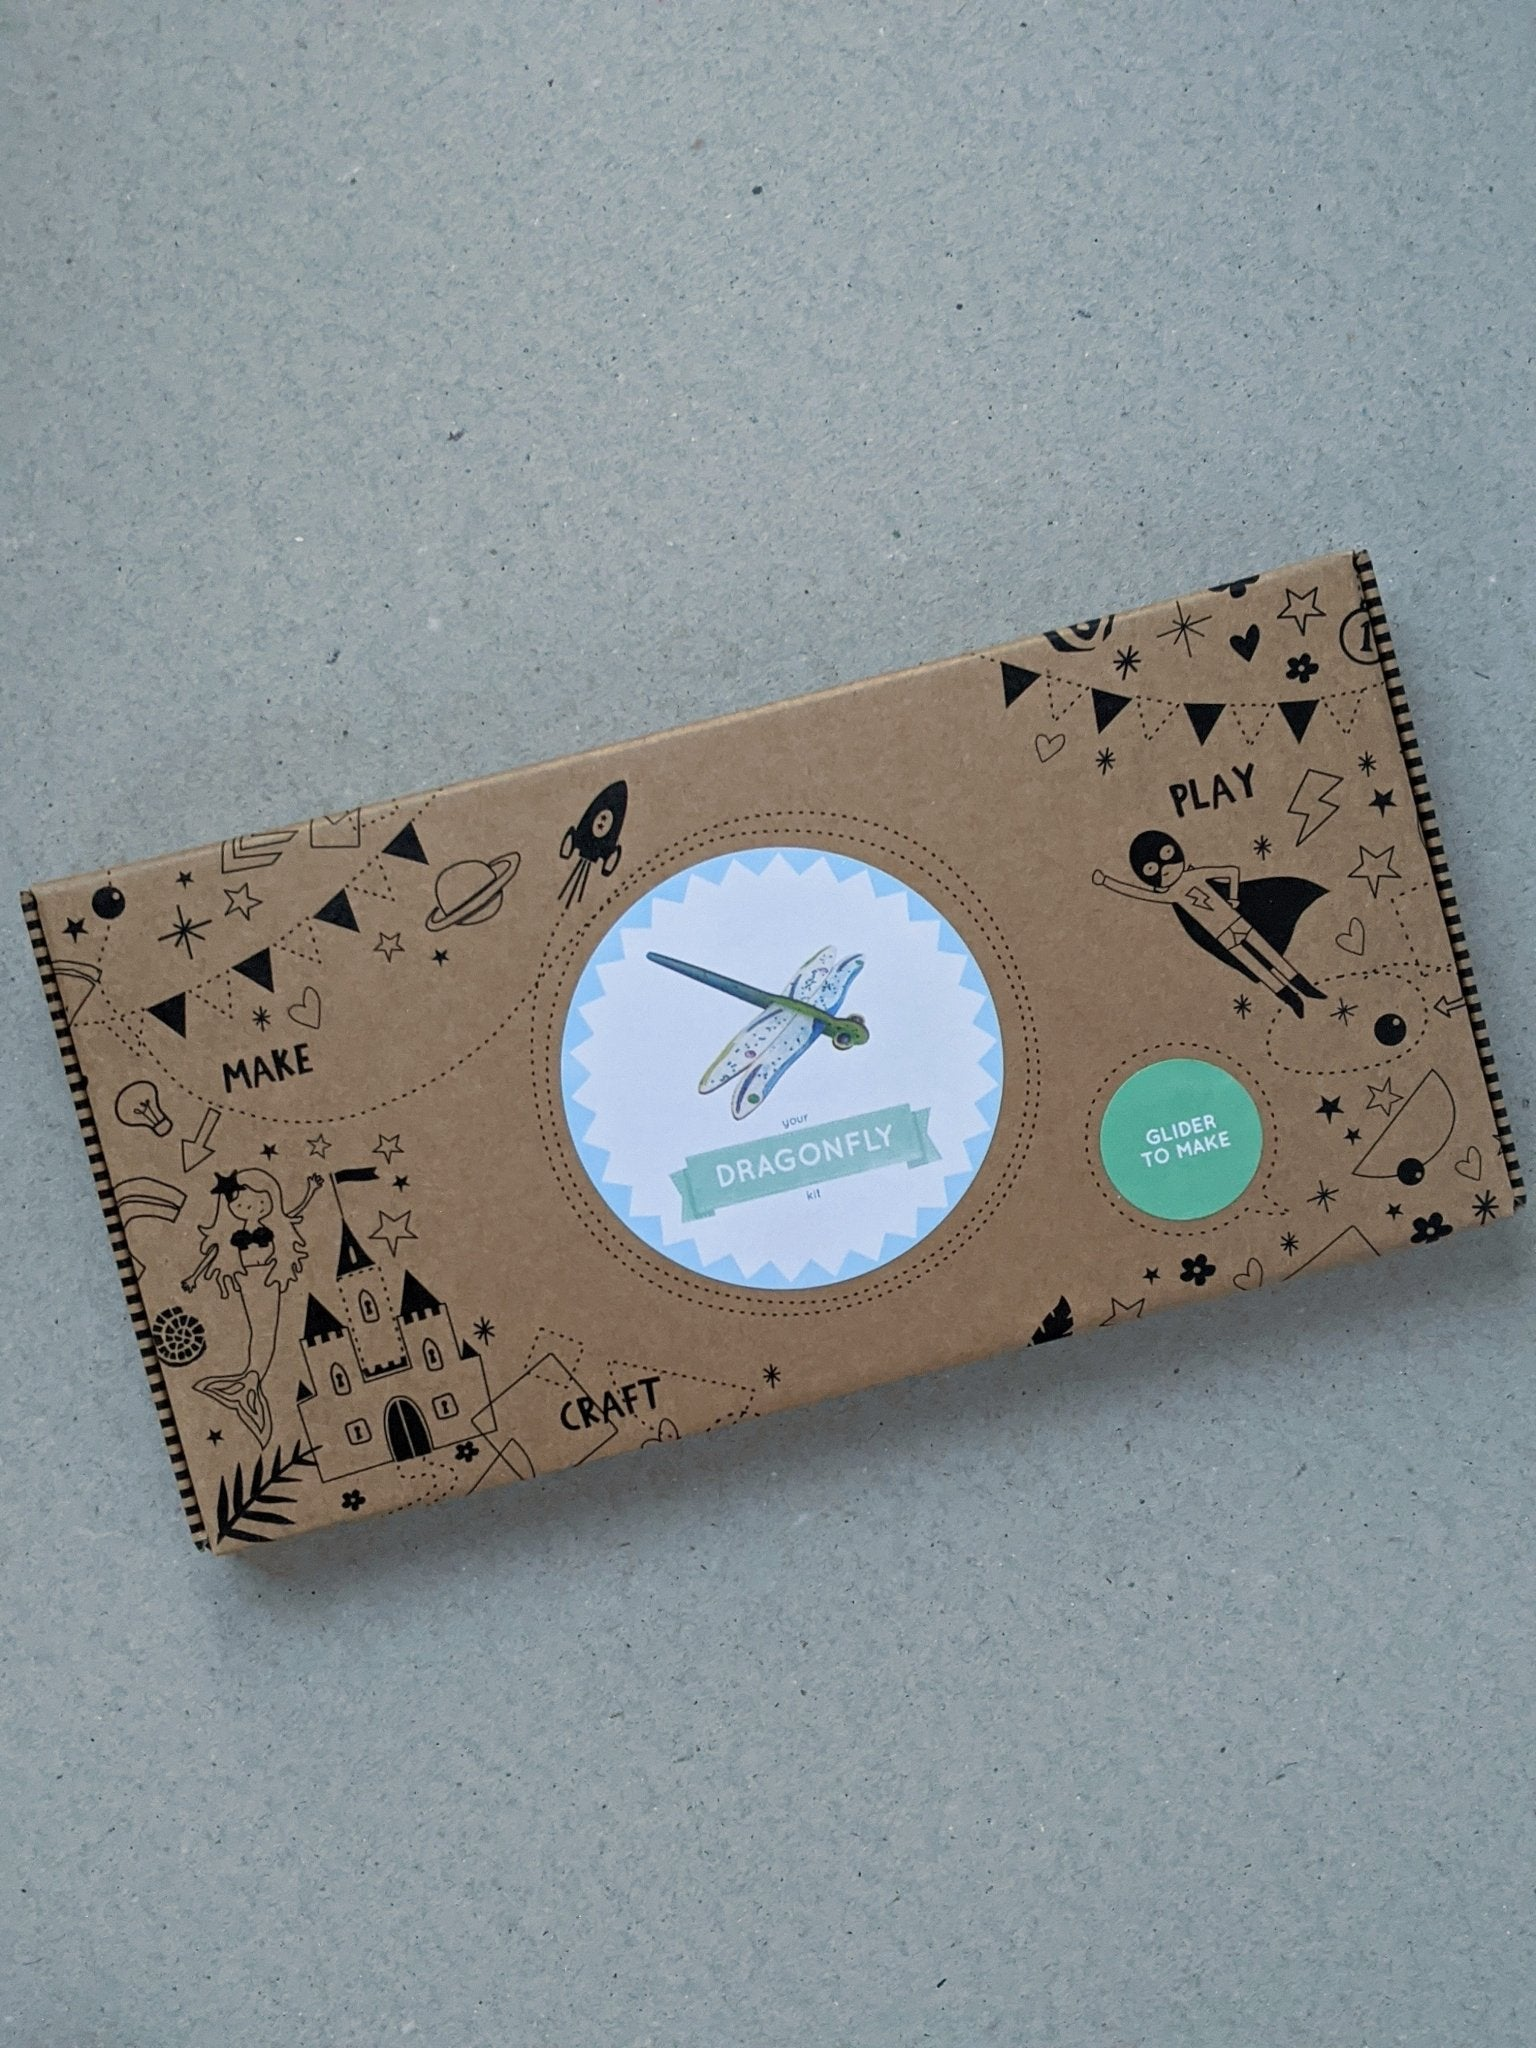 Make Your Own Dragonfly Glider Craft Kit Activity Box - The Stationery Cupboard